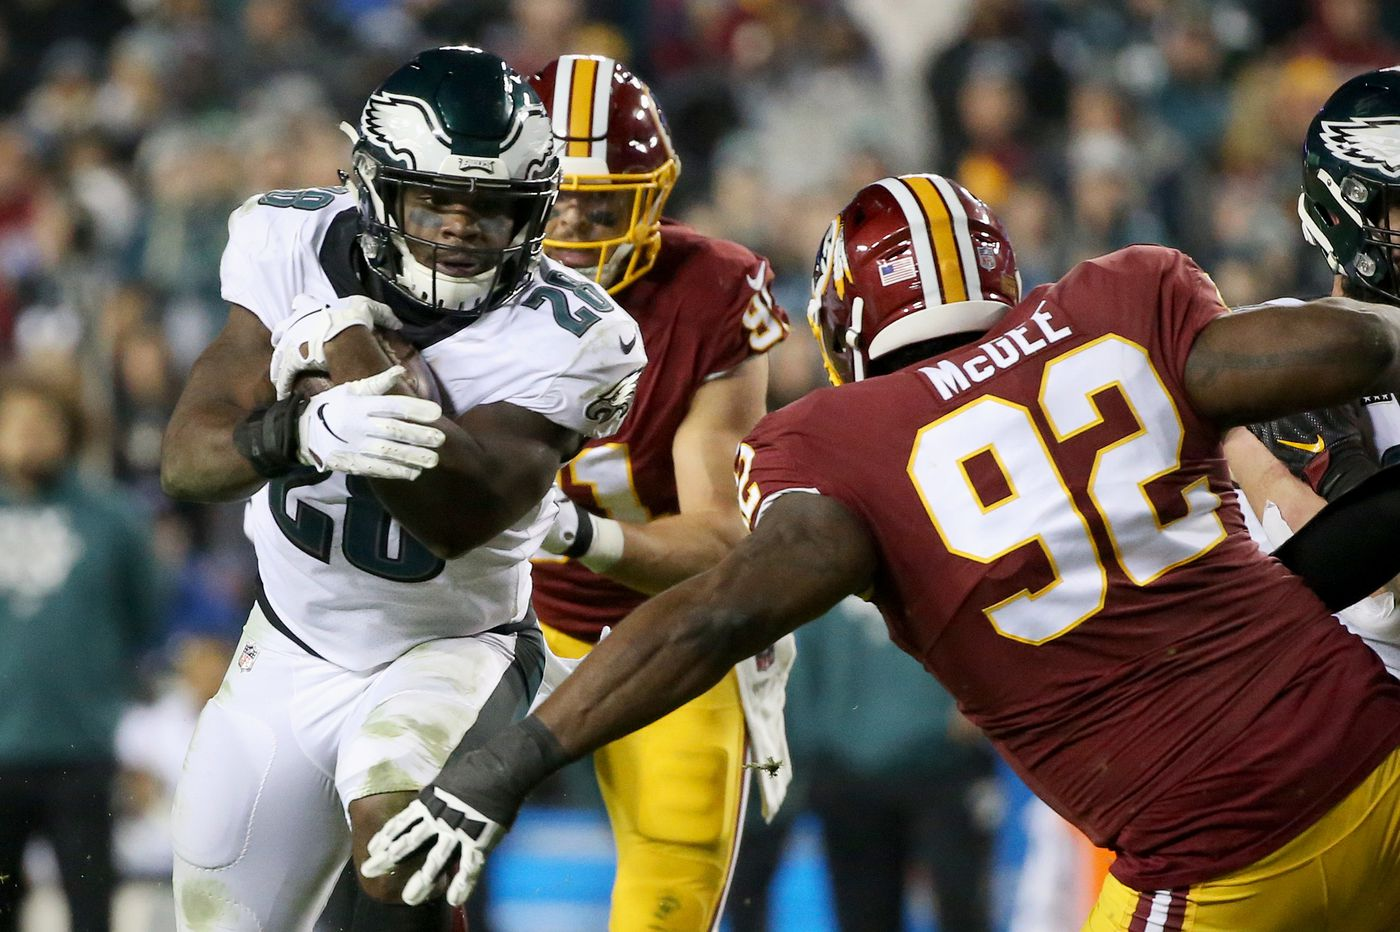 In playoffs, there's a hard road ahead for Eagles | Bob Ford